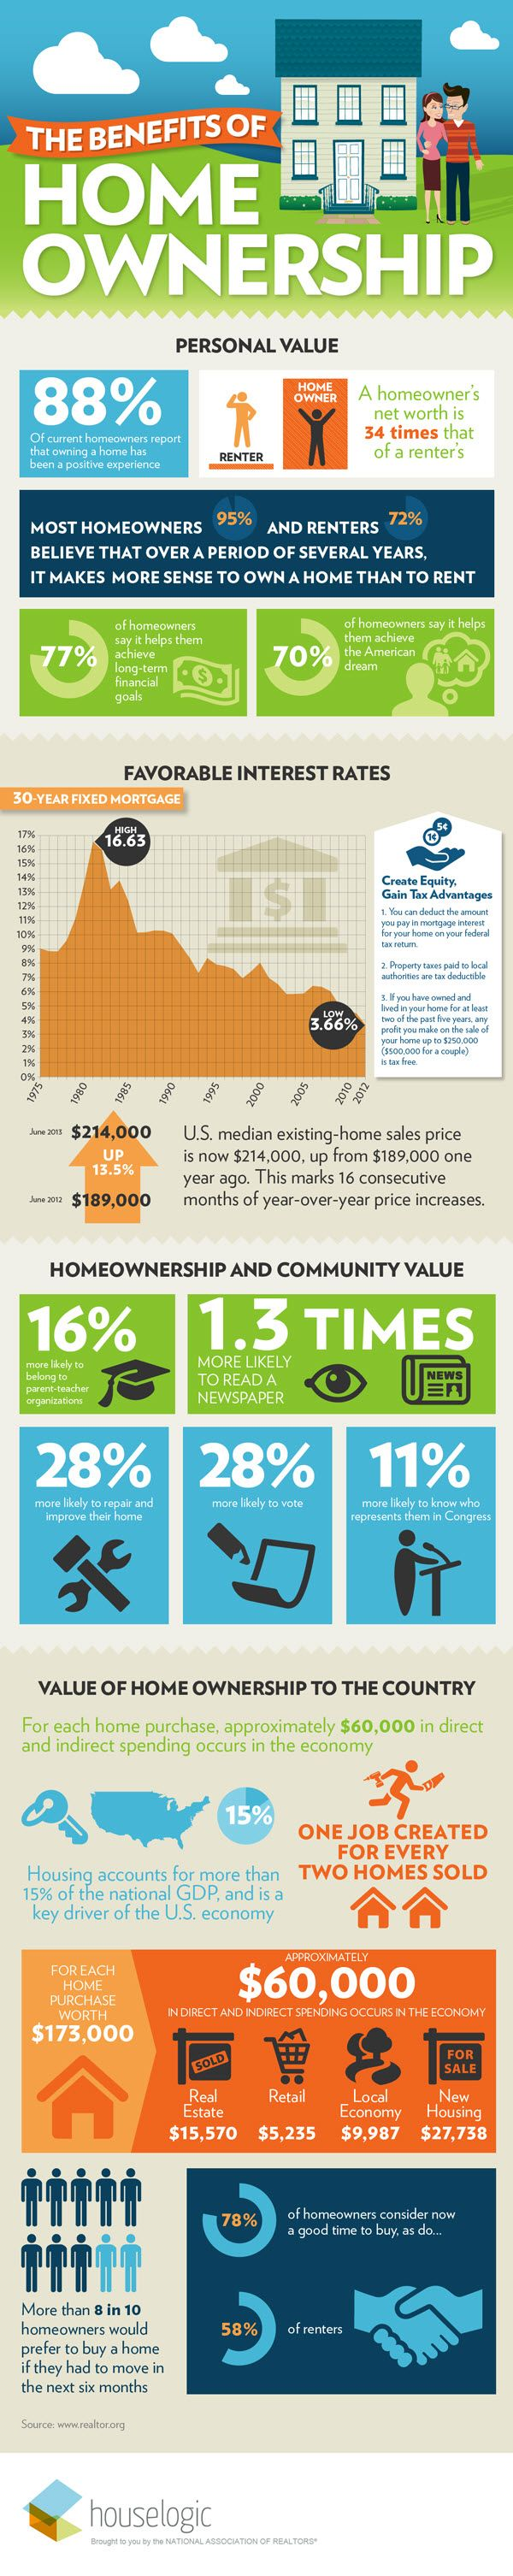 Why Owning A Home Pays Off In The Long Term.  -HouseLogic #HomeOwnership #HomerBuyerTips